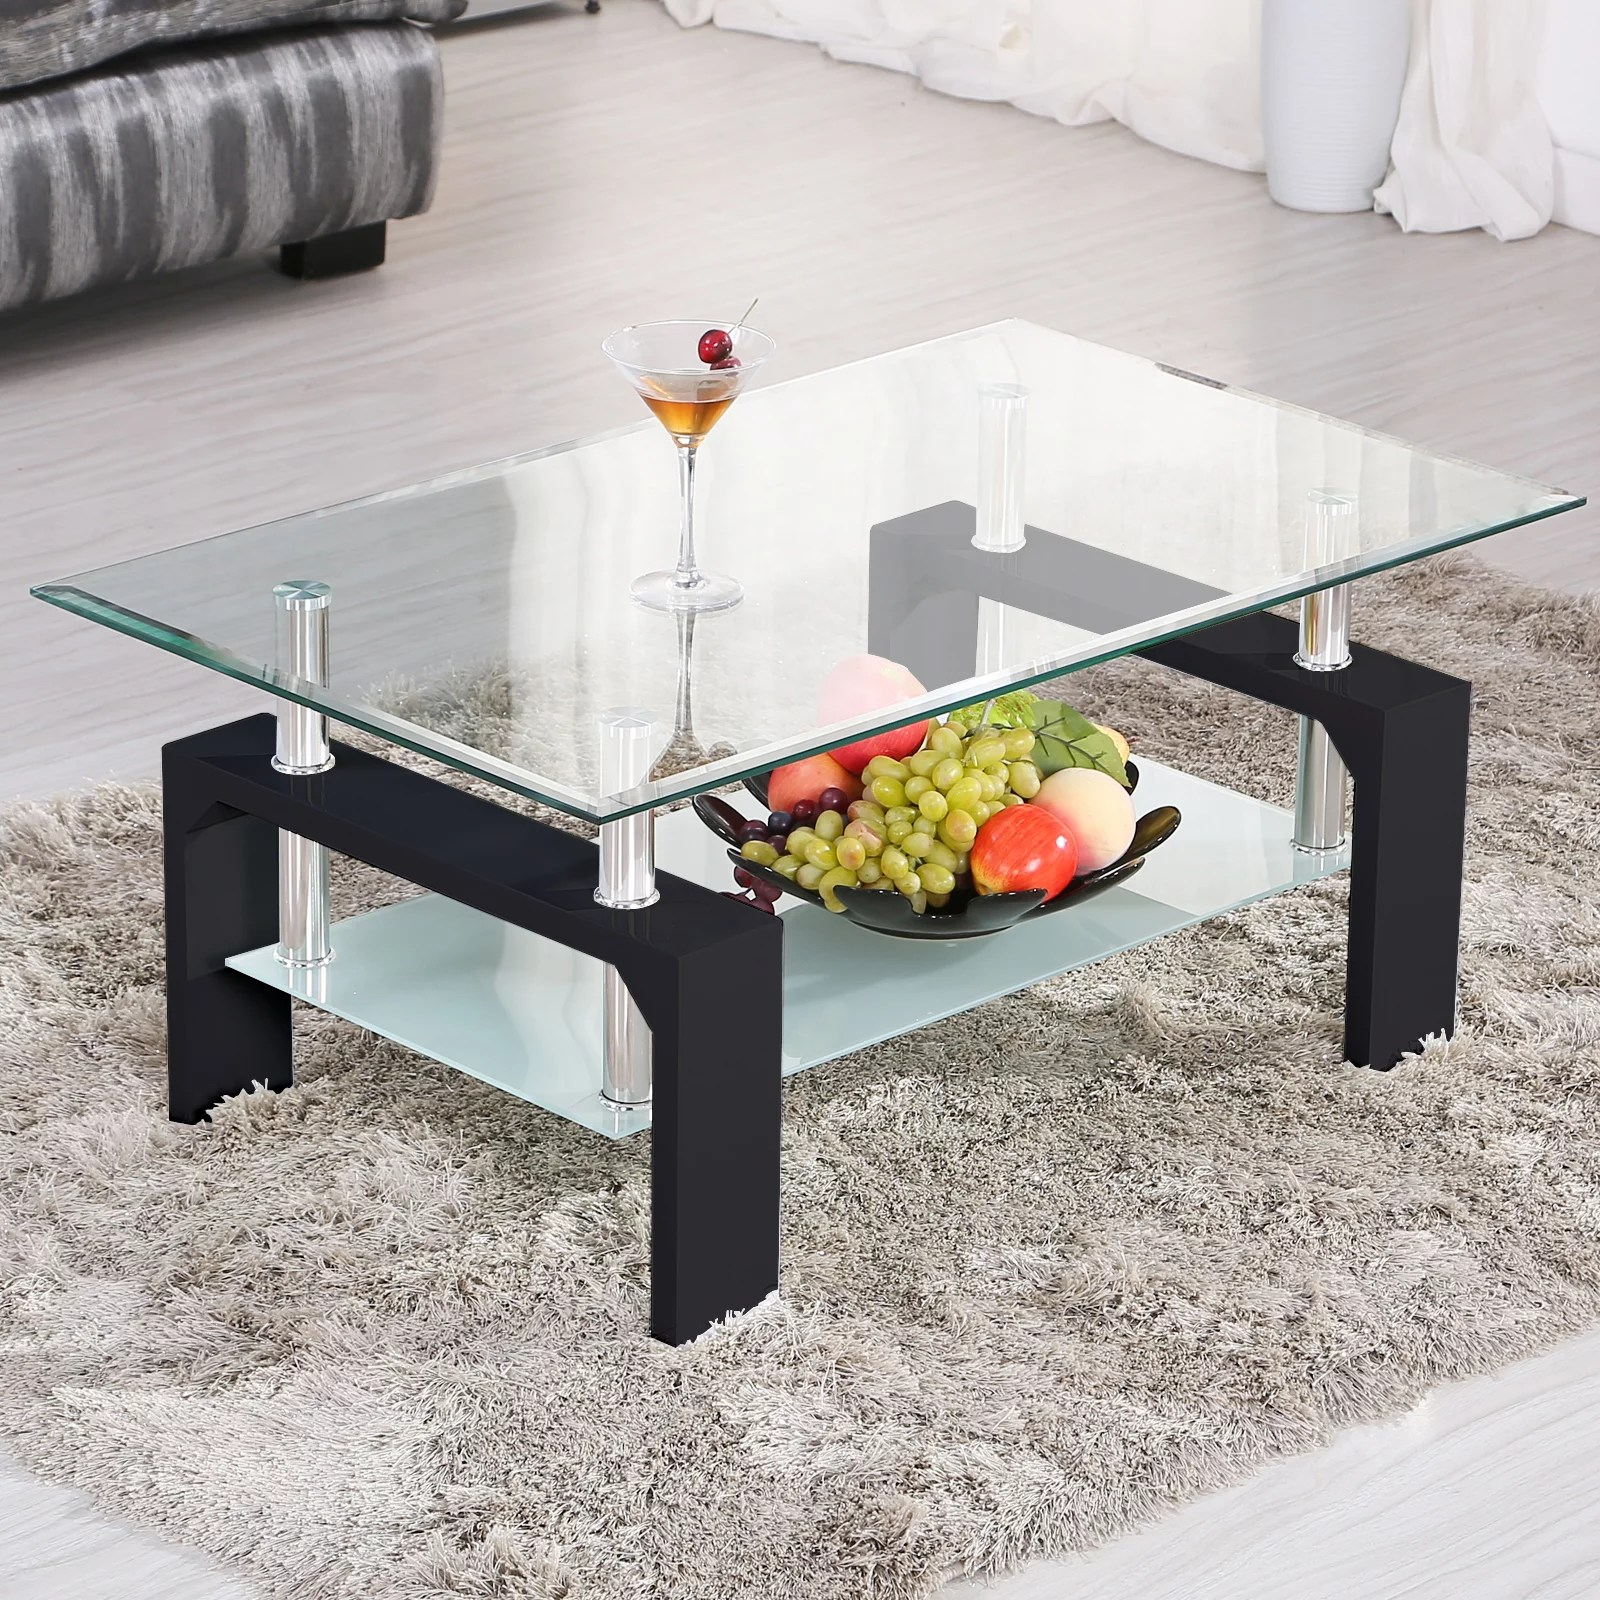 uenjoy rectangular glass coffee table shelf chrome black wood living room furniture black walmart com